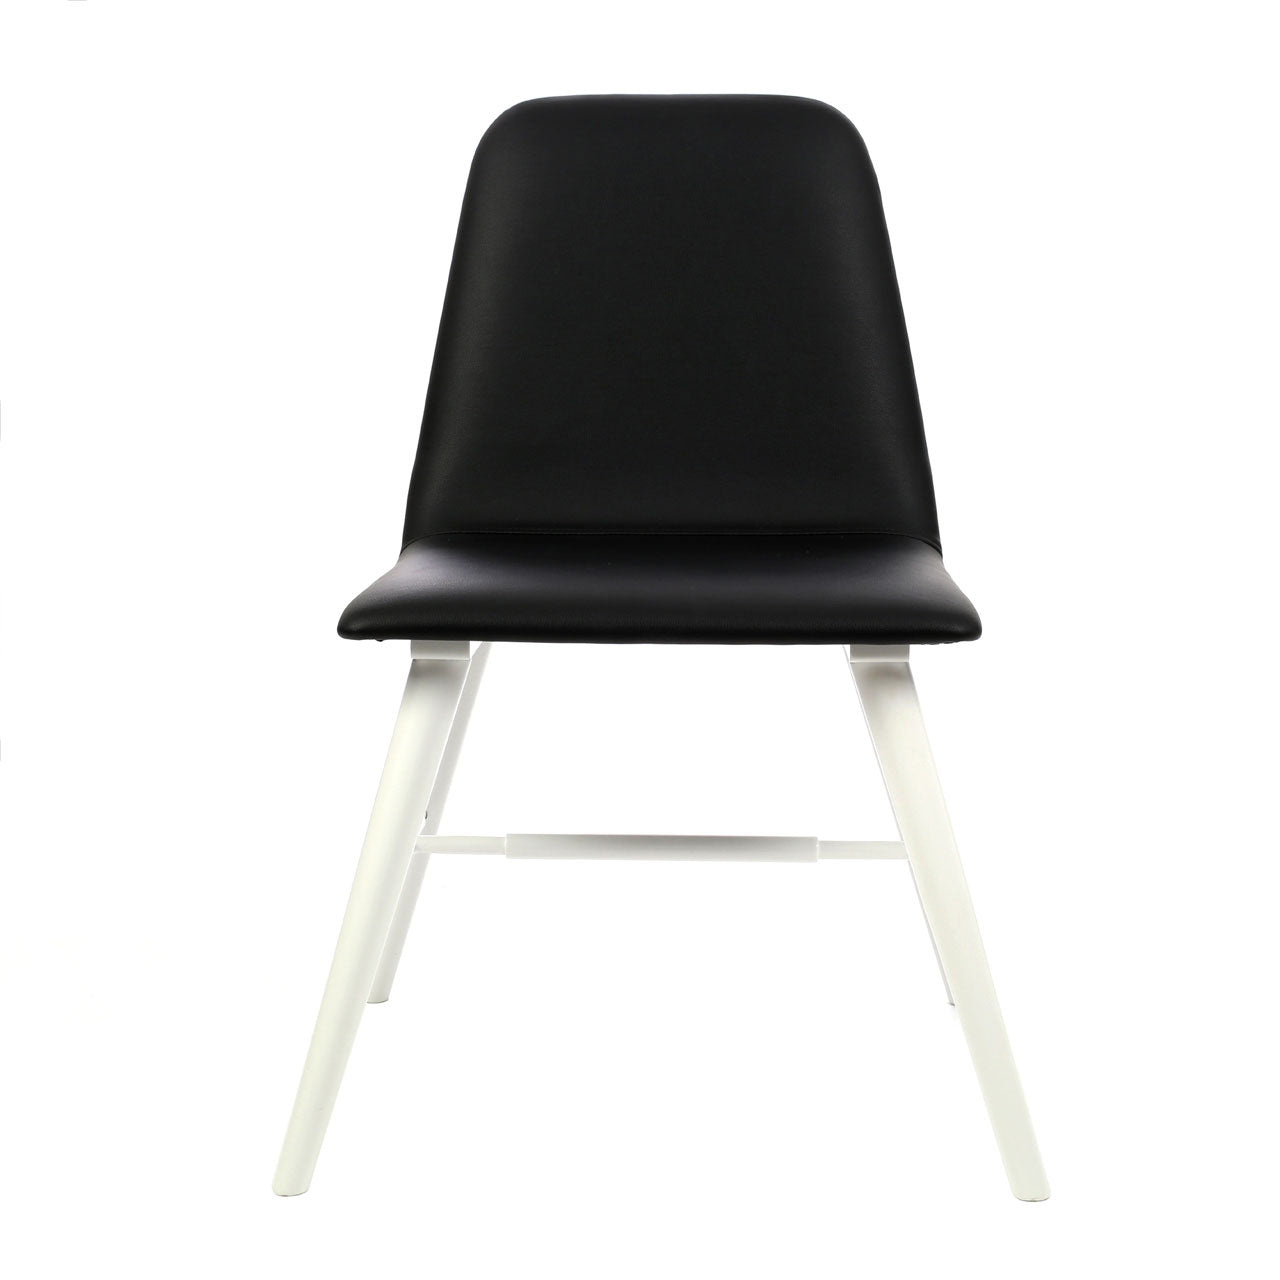 Dining Chair in Black and White - Ezzo